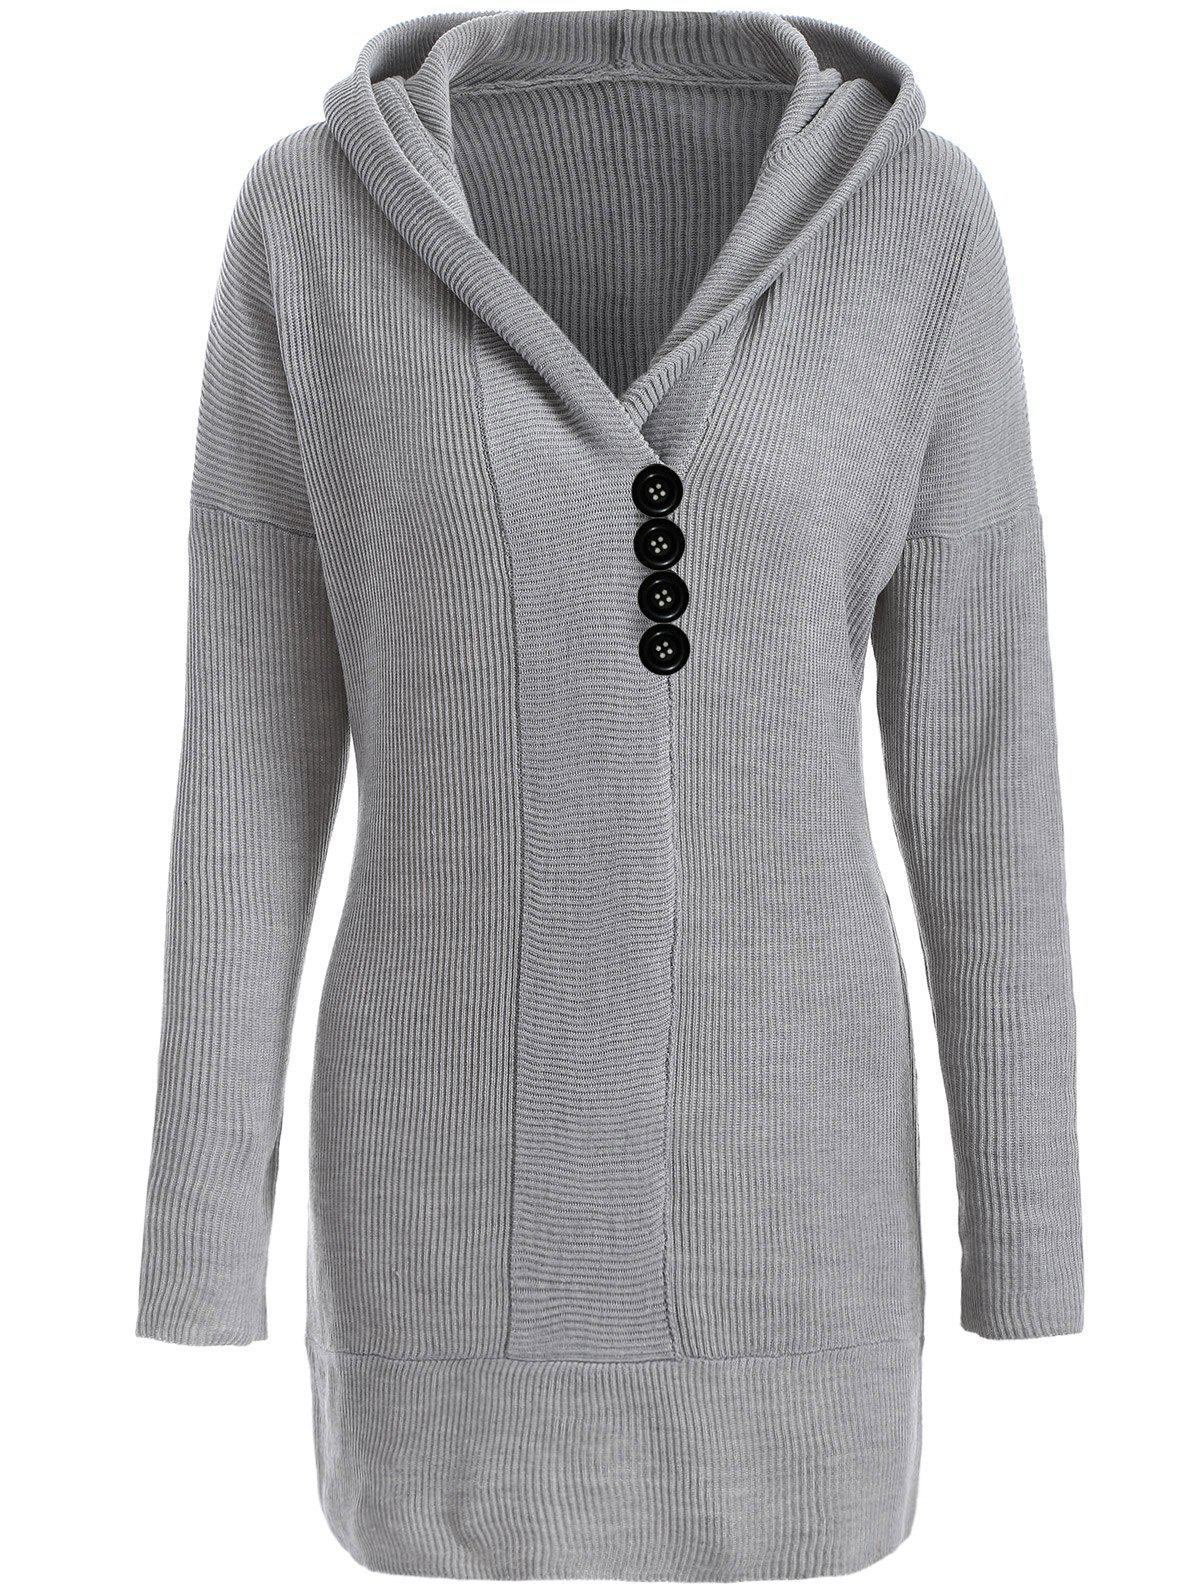 Knitted Hooded Buttoned Longline SweaterWomen<br><br><br>Size: XL<br>Color: GRAY